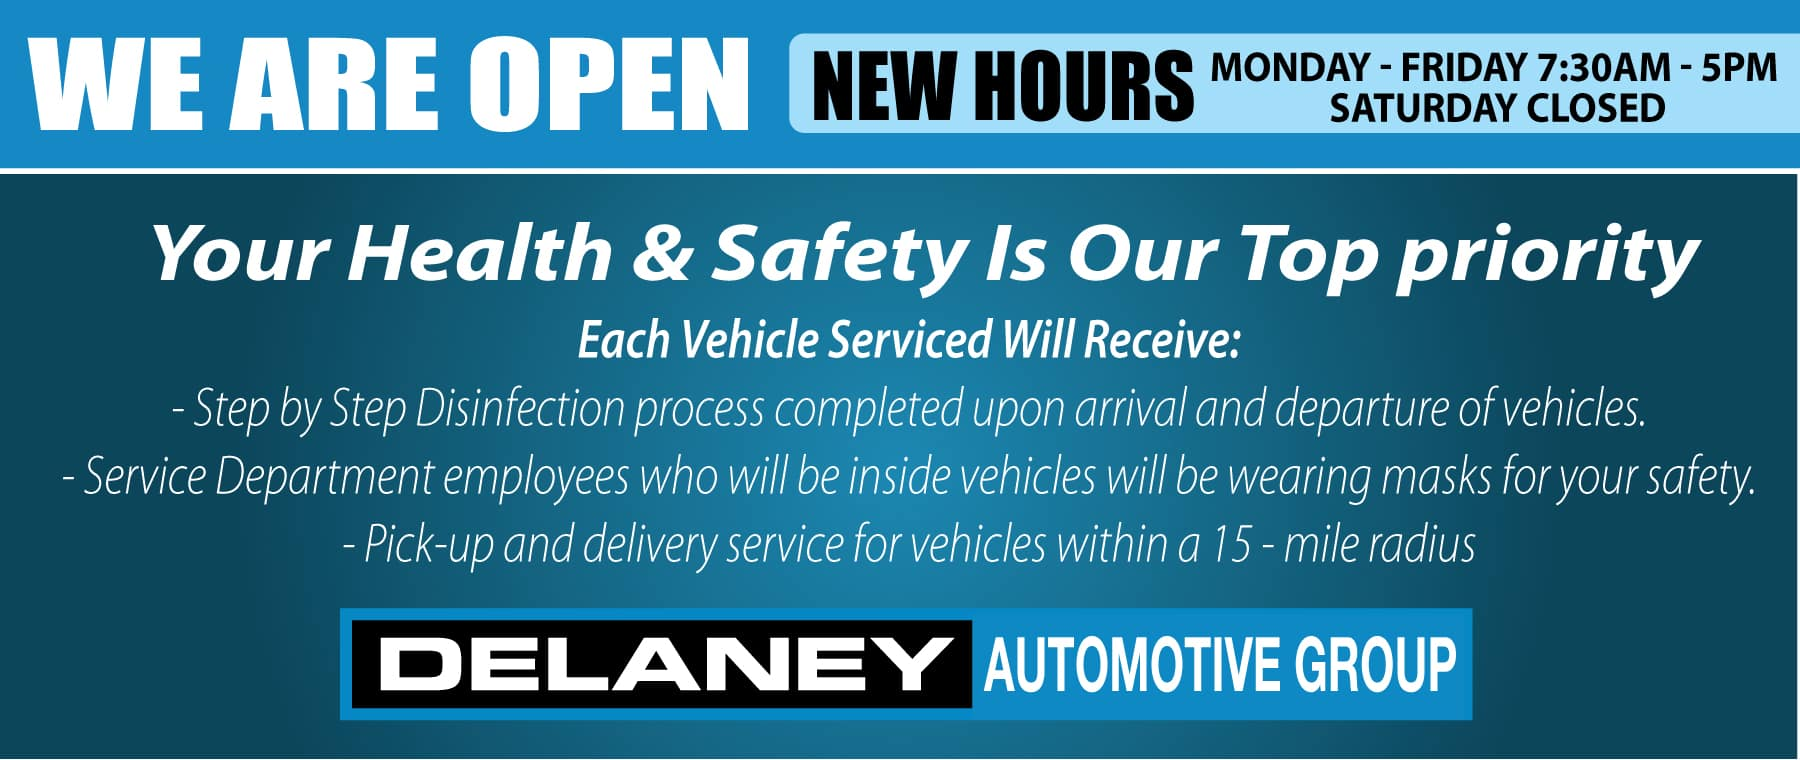 We are open at Delaney Honda